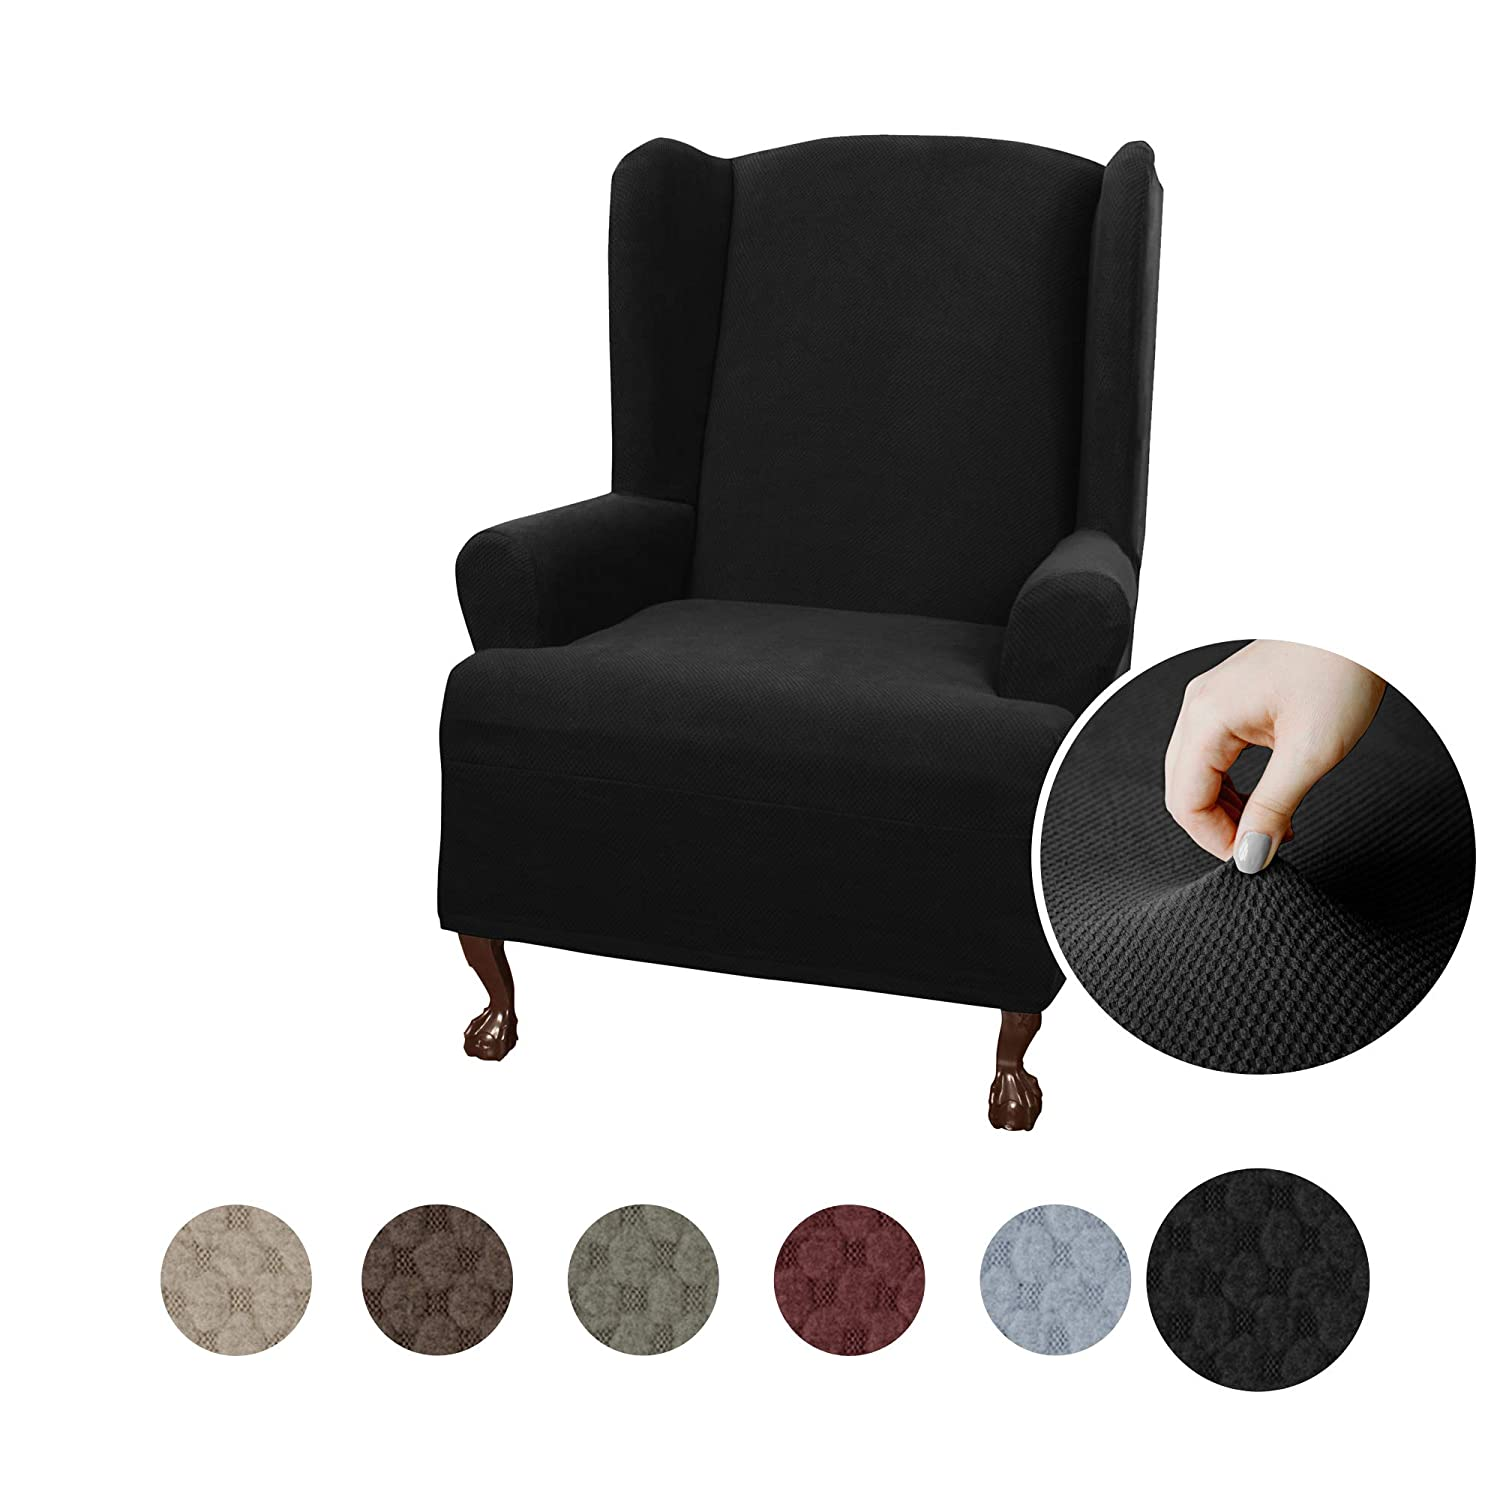 MAYTEX Pixel Ultra Soft Stretch Wing Back Arm Chair Furniture Cover Slipcover, Black